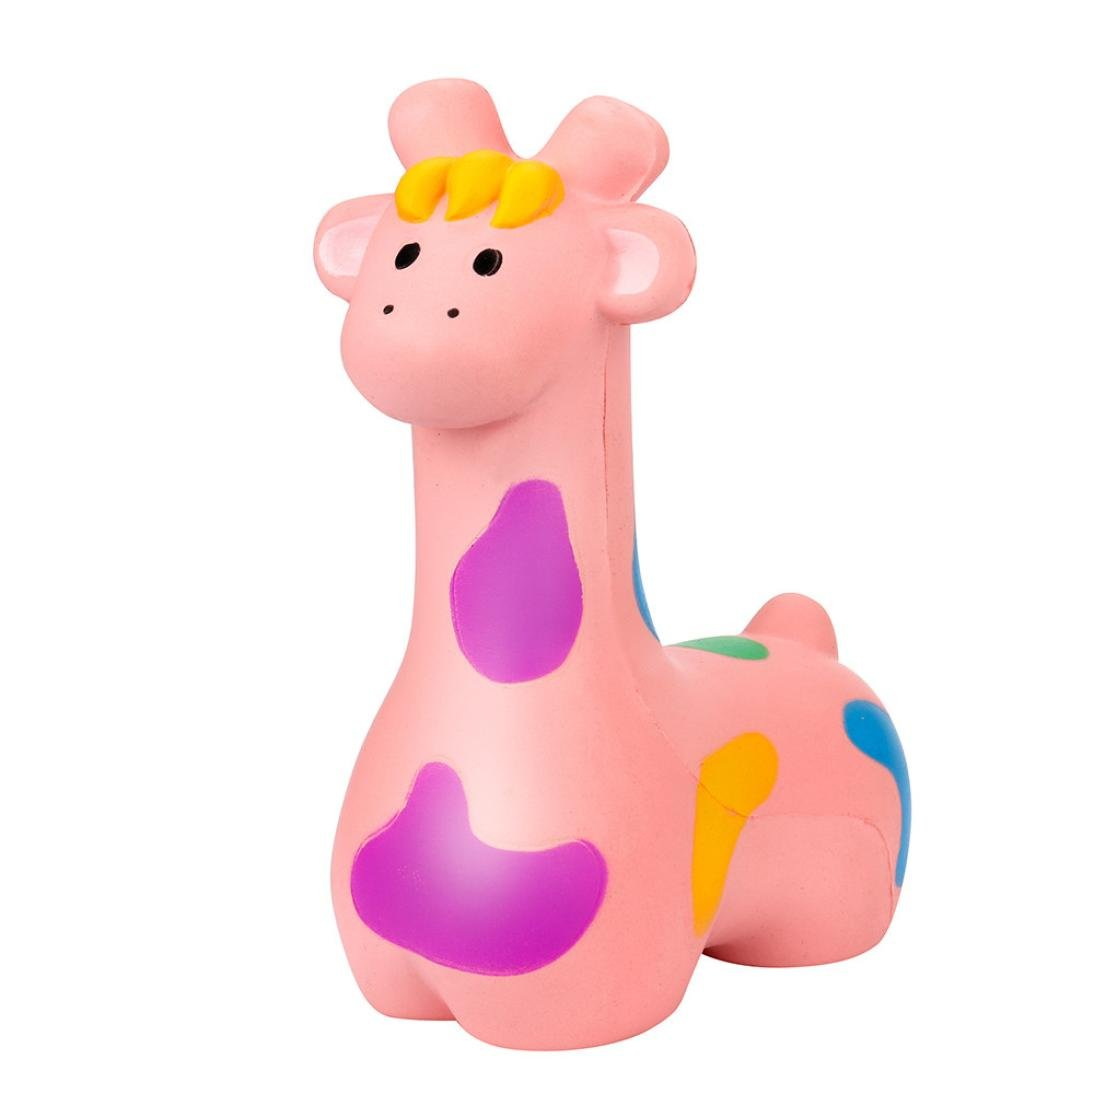 Kawaii Jumbo 20cm Squishie Super Big Giraff Slow Rising Cream Squeeze Scented Cure Toys Gift for Kids and Adults- Waymine by Waymine Toy (Image #5)